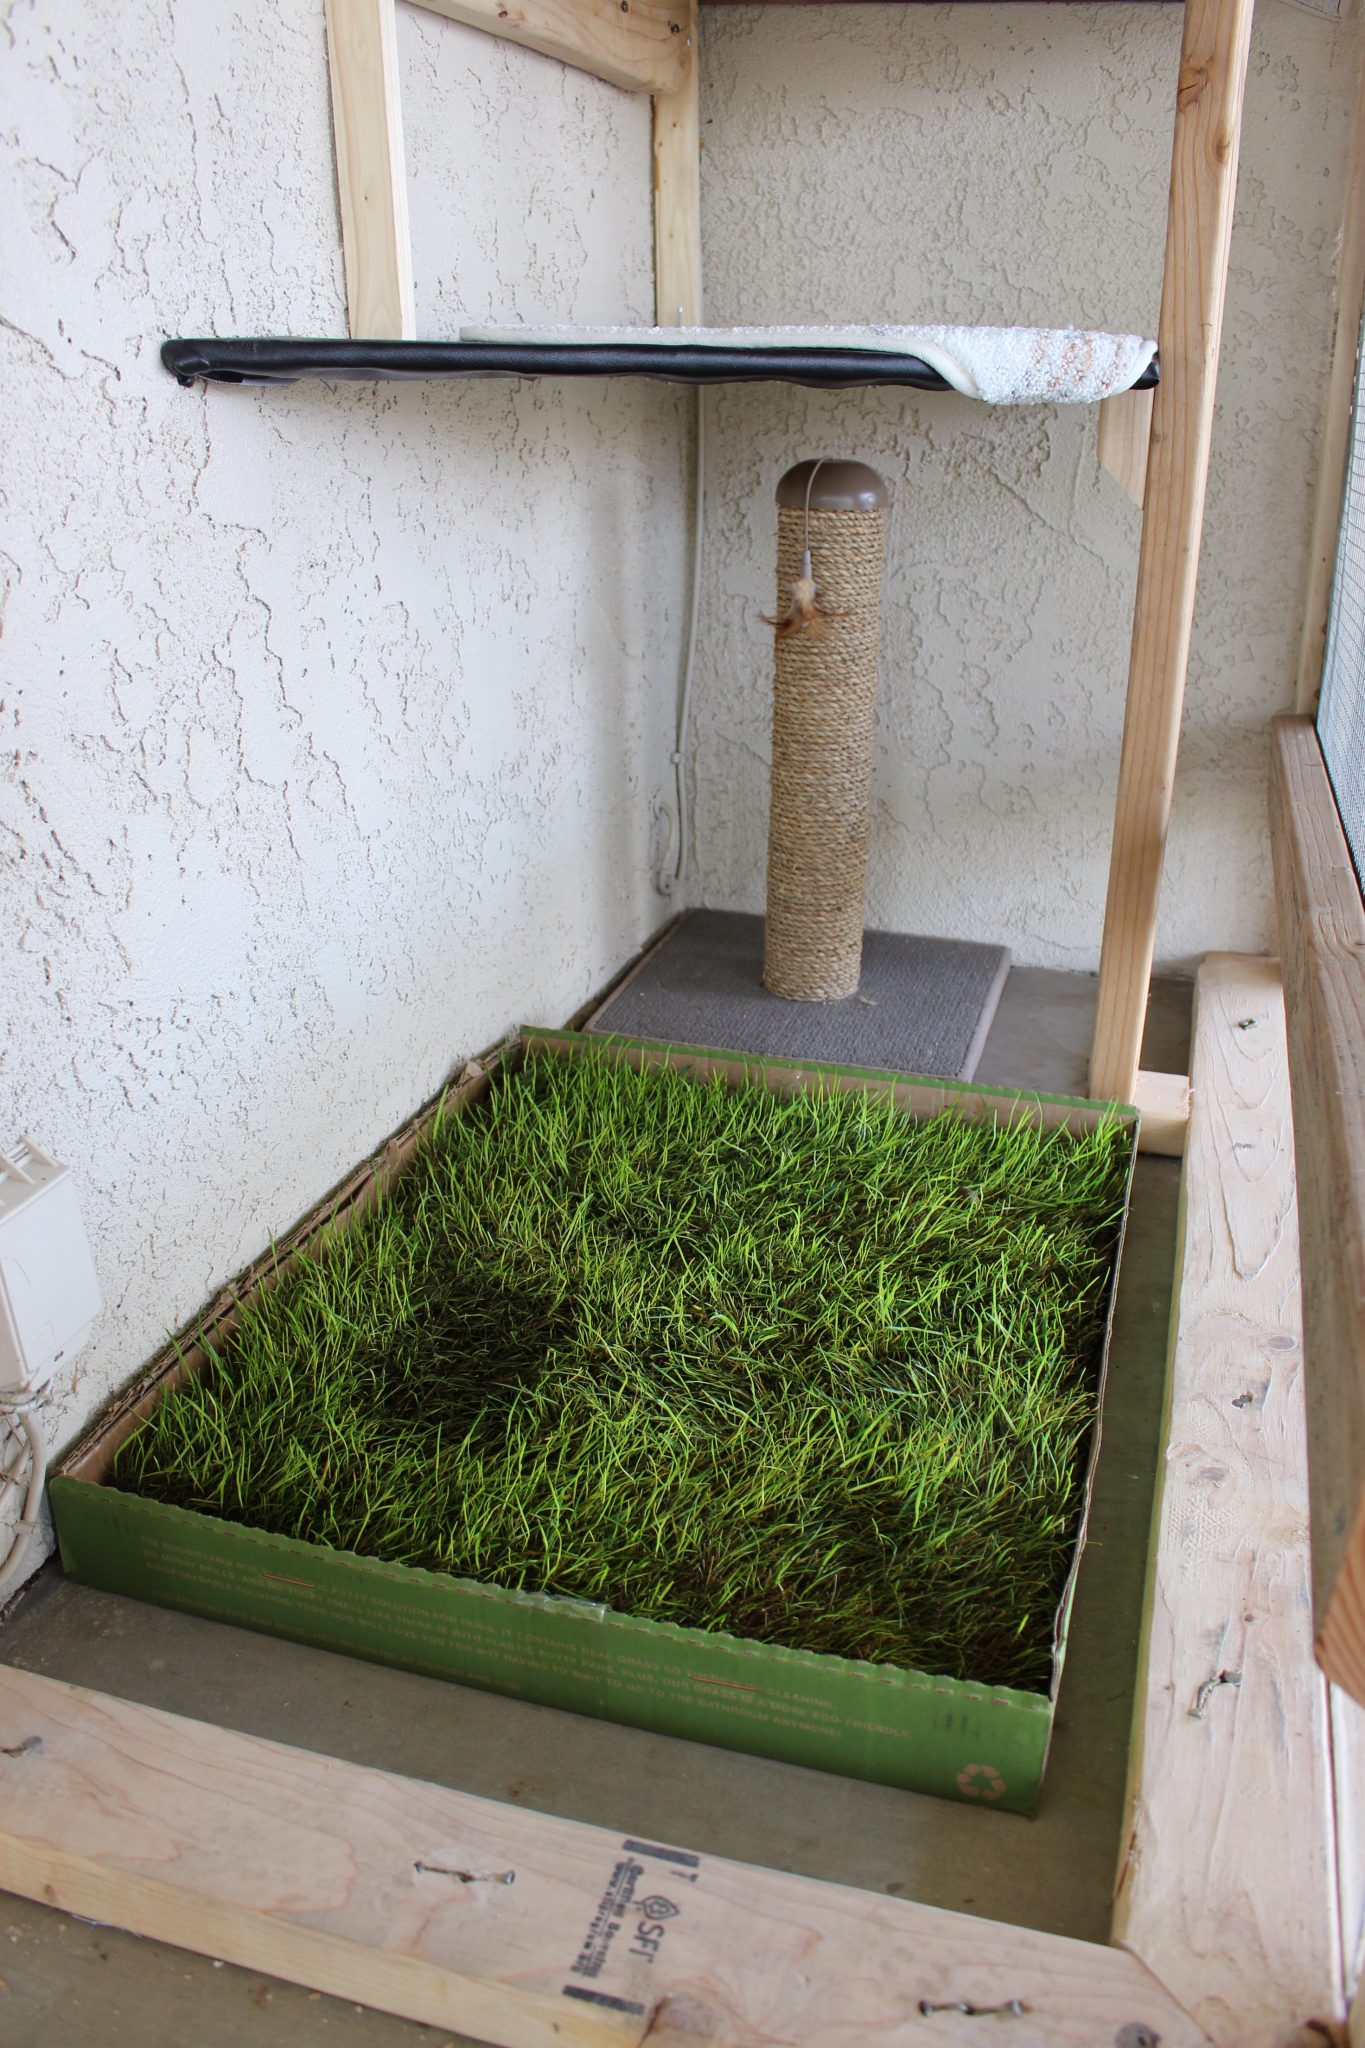 Alicia Haney's cats also have a Disposable DoggieLawn from Fresh Patch, so the catio is the perfect place for them to practice using it instead of a litter box. (Photo: Alicia Haney)